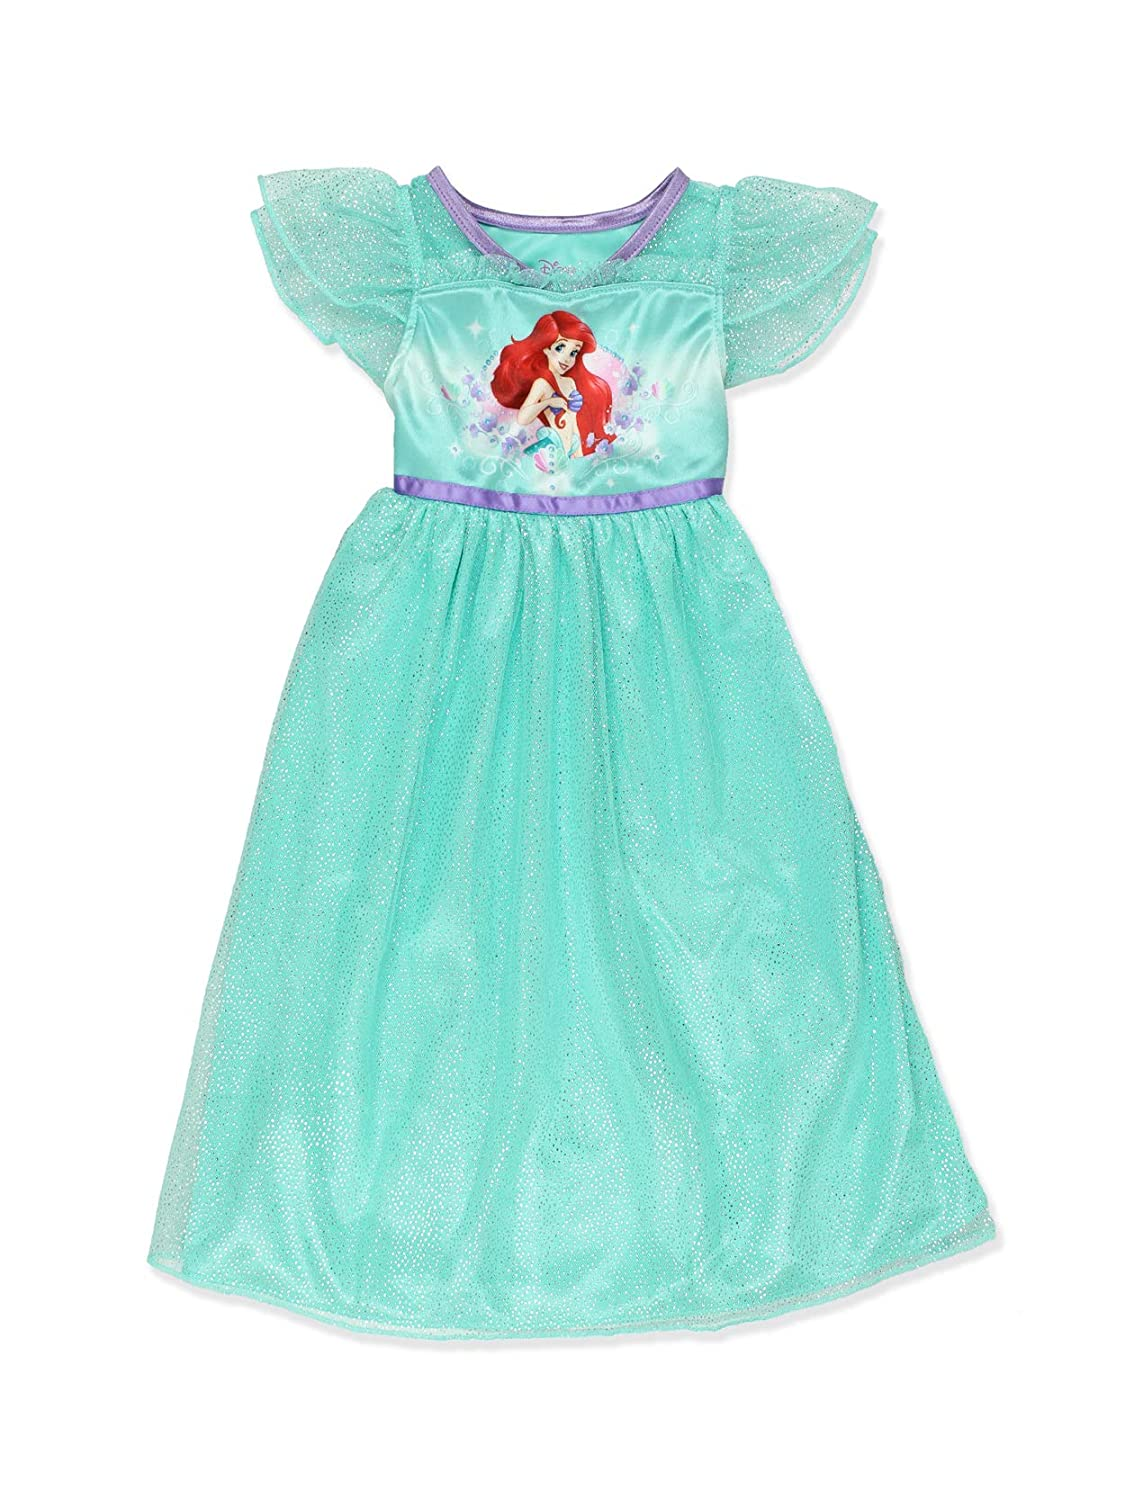 bf2ba4f1d7 BEAUTIFUL FANTASY NIGHTGOWN - The Little Mermaid fantasy gowns will make  your little girl feel just like a Princess! With beautiful details and a  sparkly ...